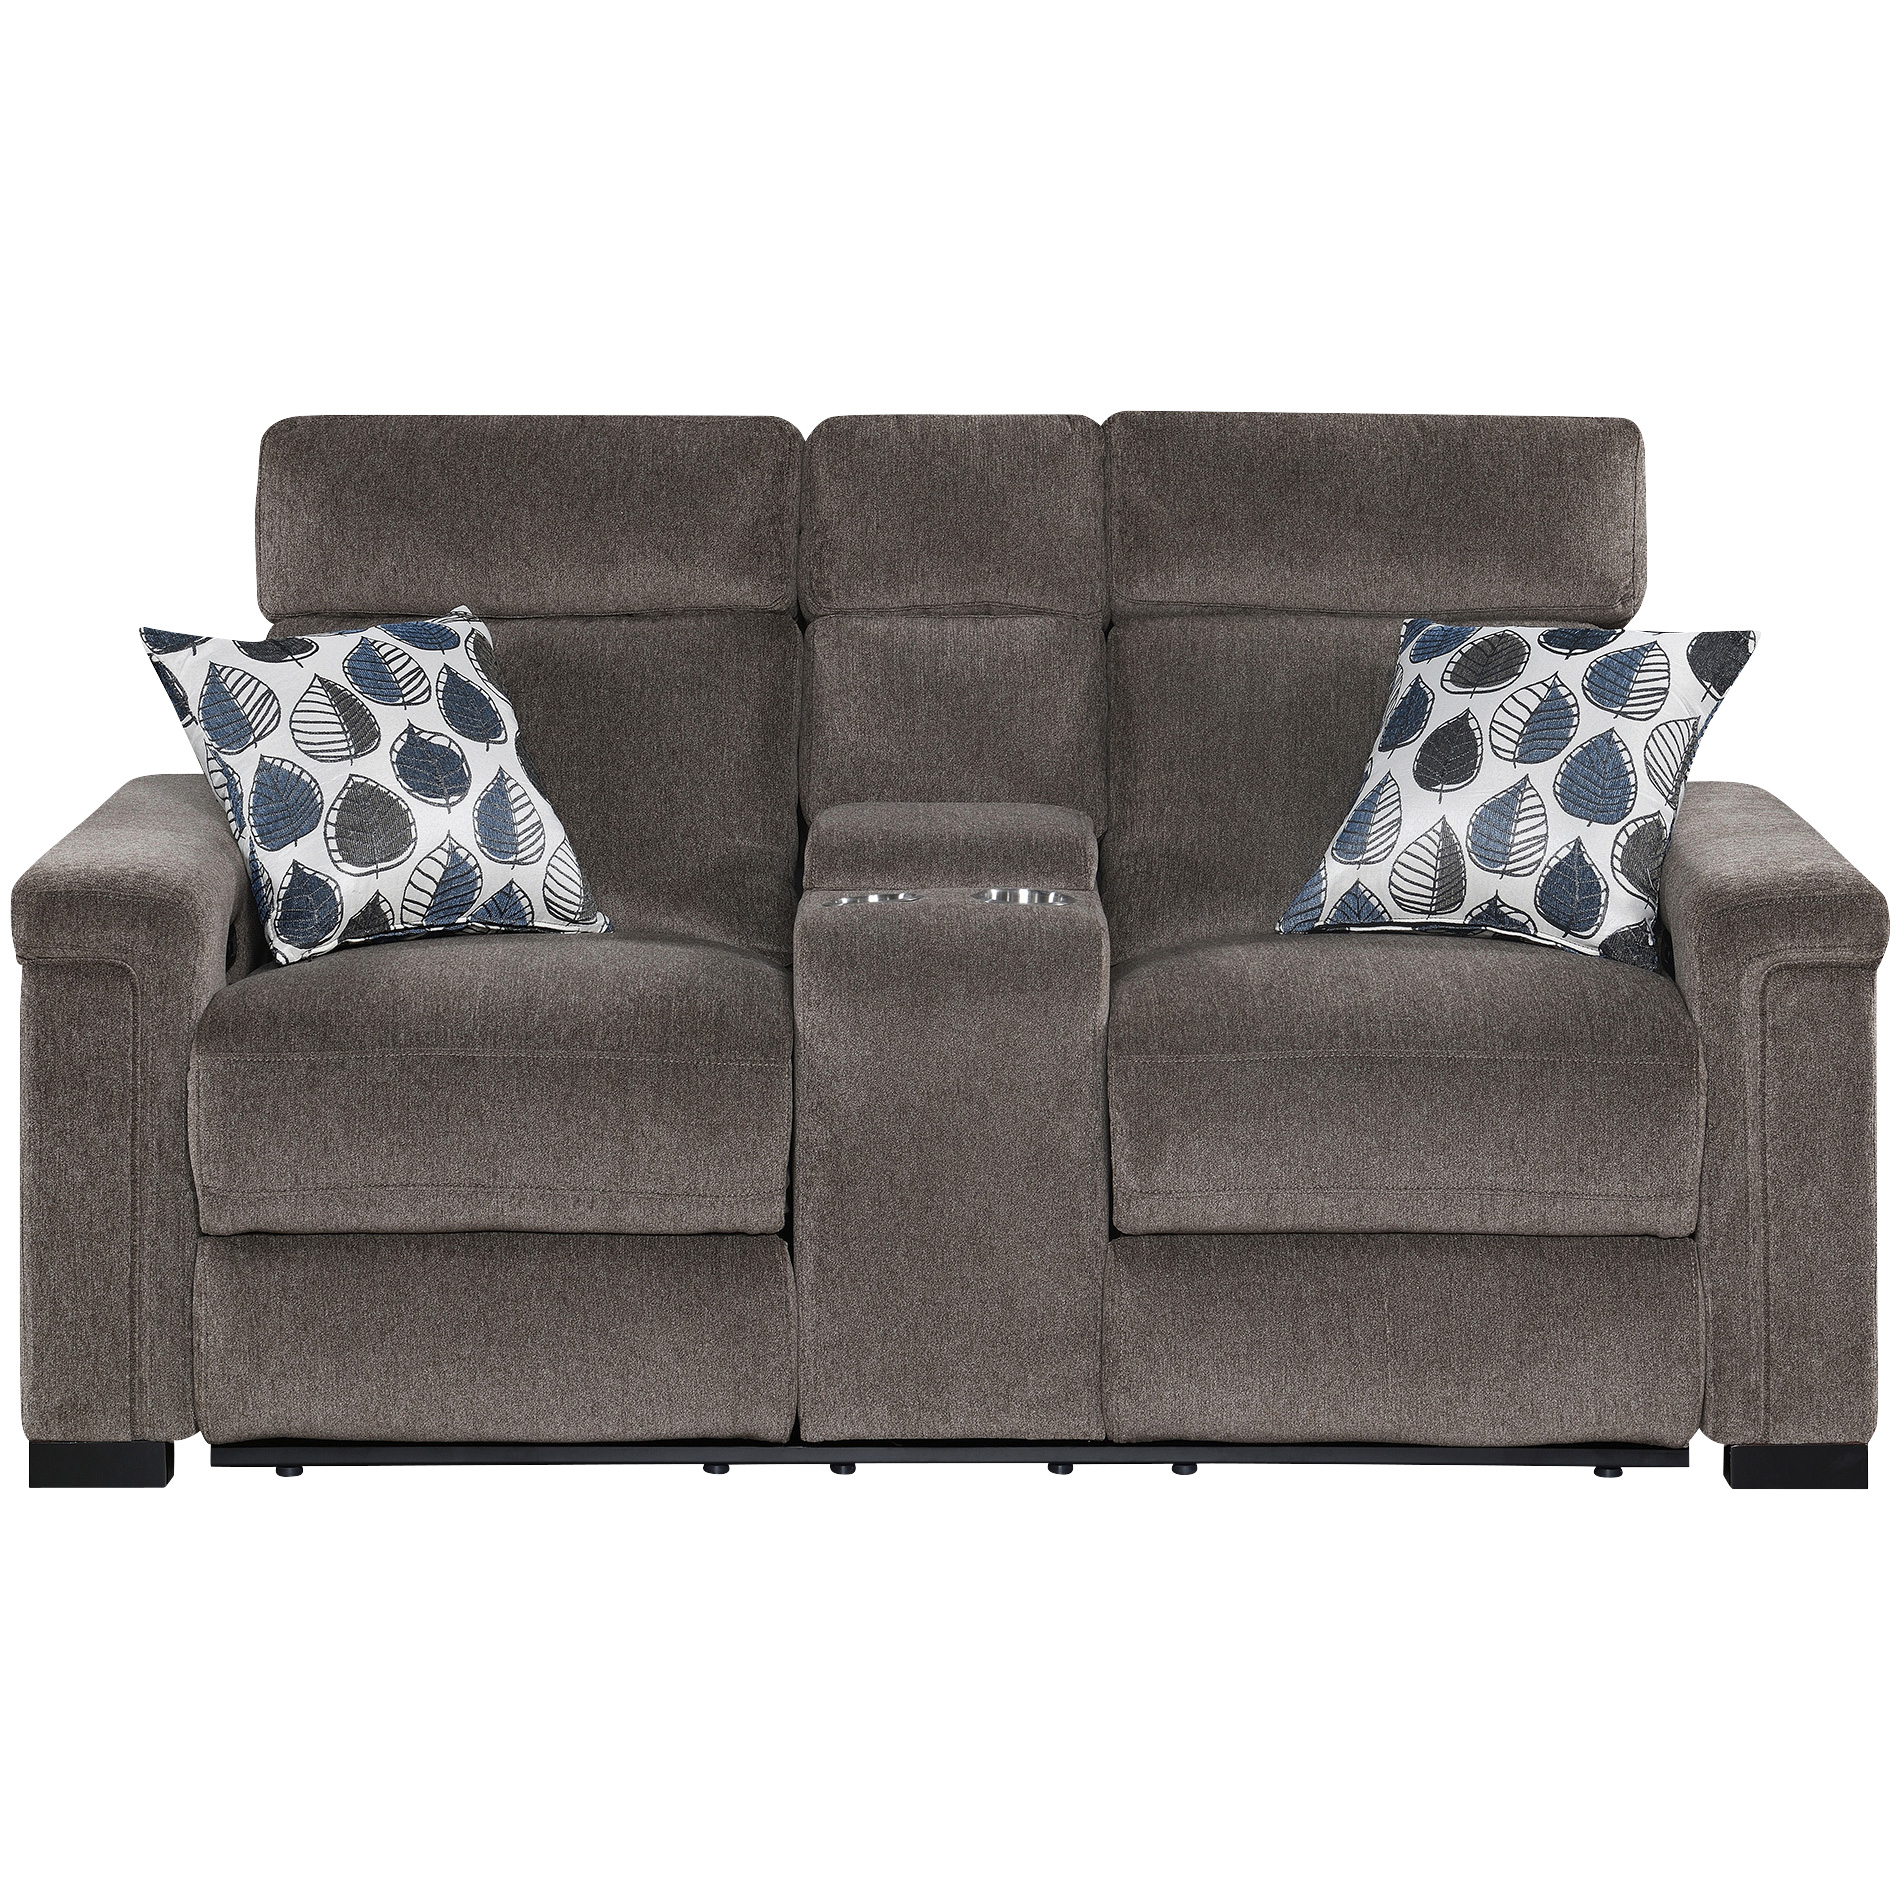 Motion 1Nnovations   Lavenue Brown Power Plus Reclining Console Loveseat Sofa